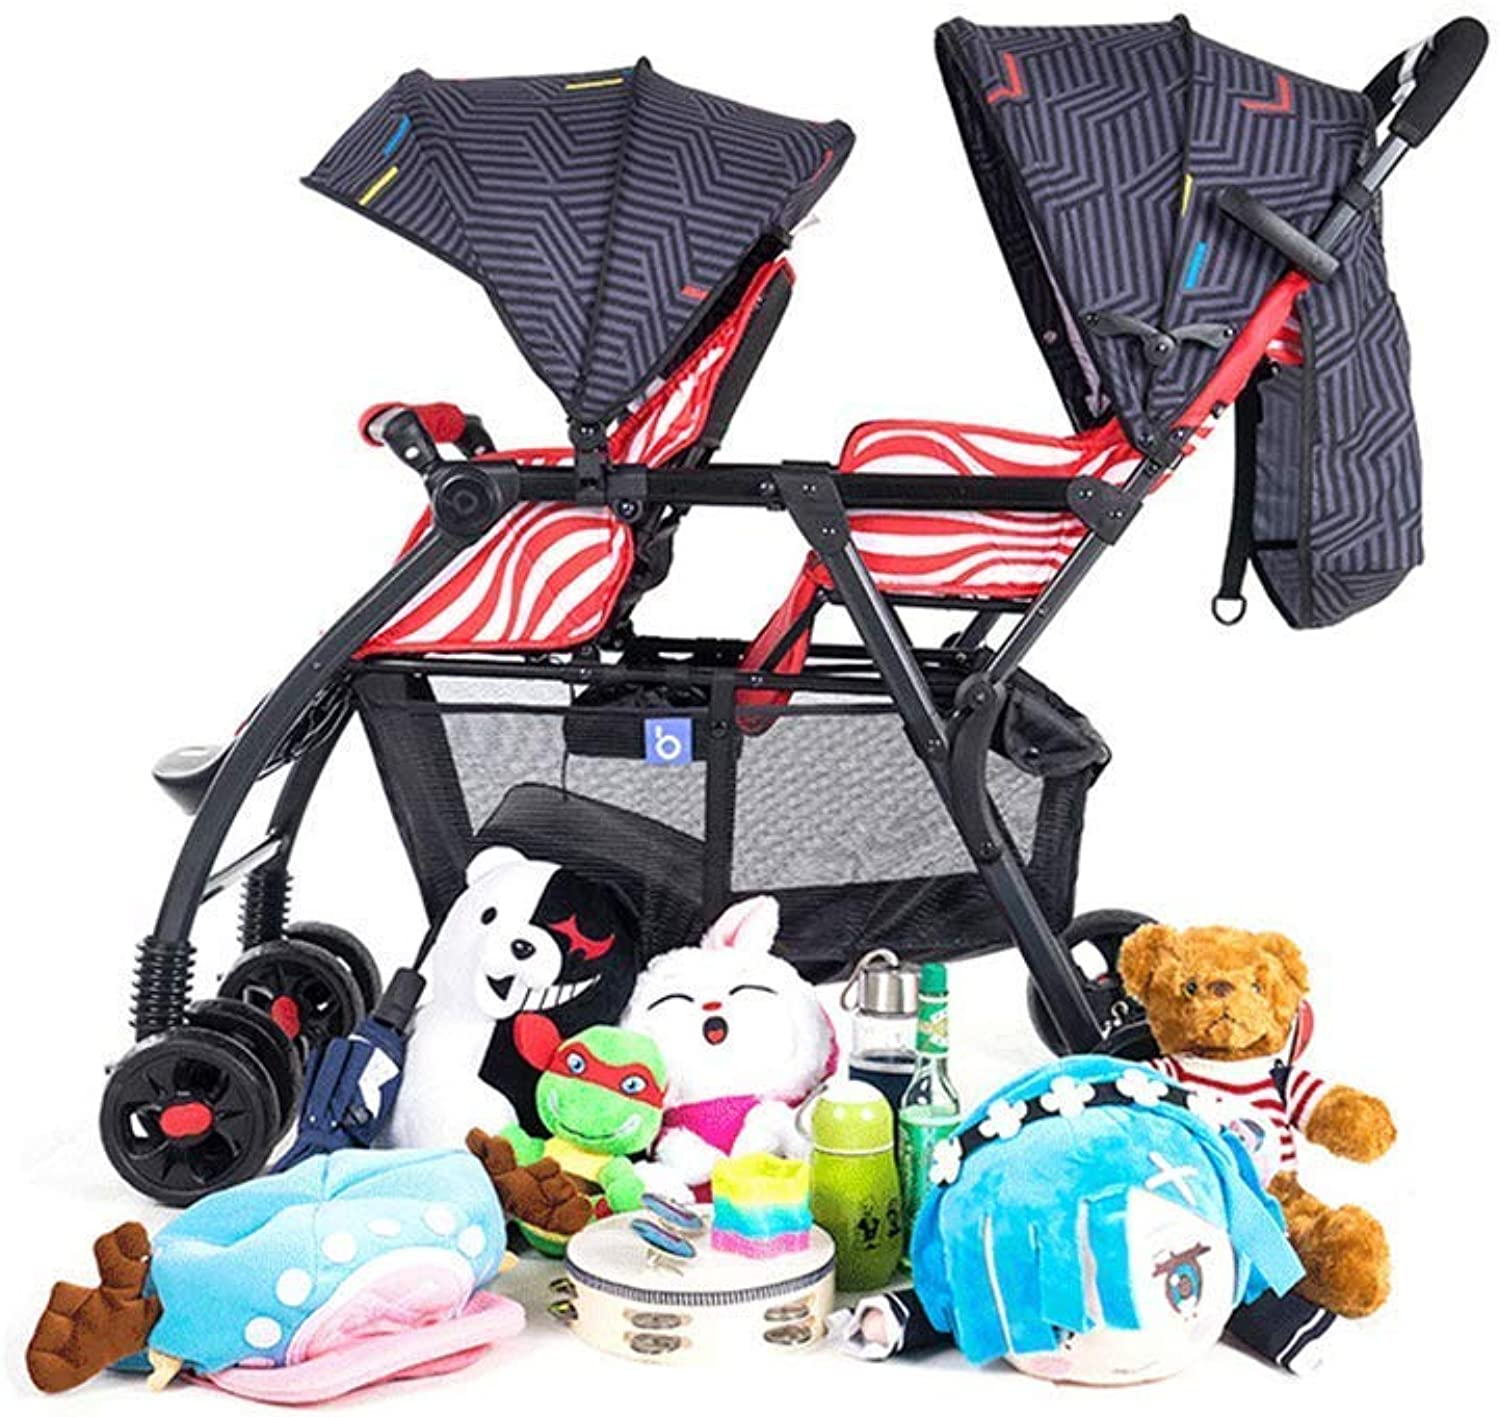 Twin Baby Stroller Front and Rear Seat Double Baby Stroller Lightweight Folding Can Sit Reclining Baby Travel Pram,Red